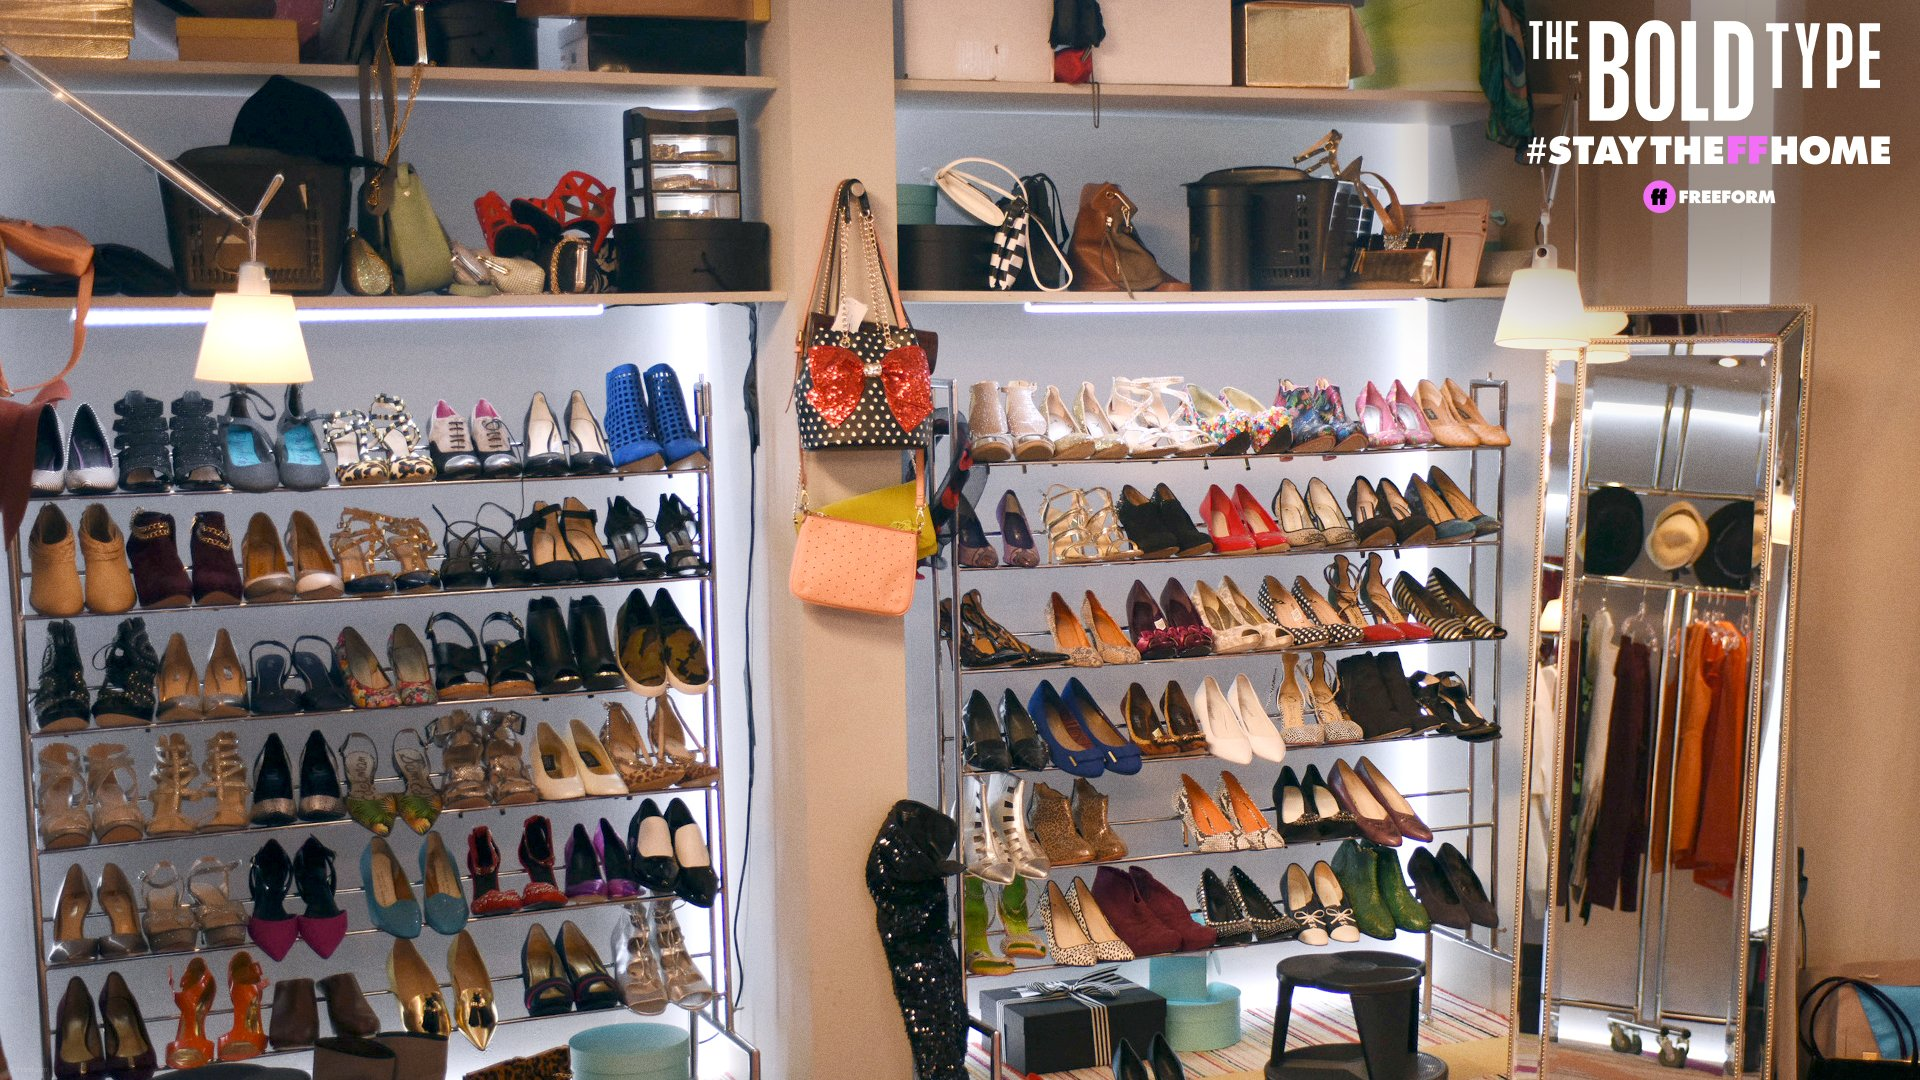 The Bold Type 3 - Racks of shoes